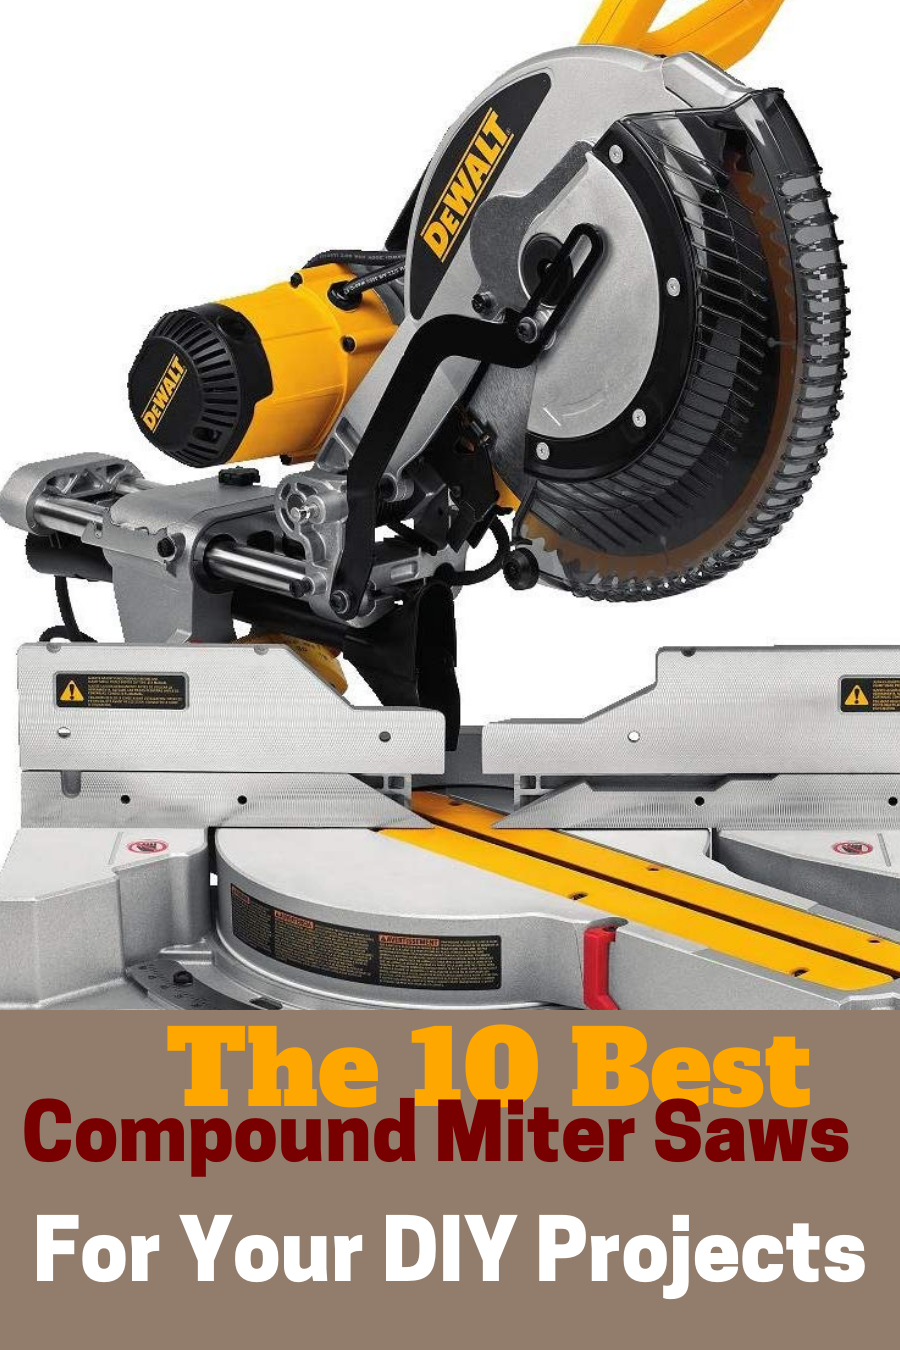 Top 10 Best Compound Miter Saw 2020 With Images Miter Saw Sliding Compound Miter Saw Mitered